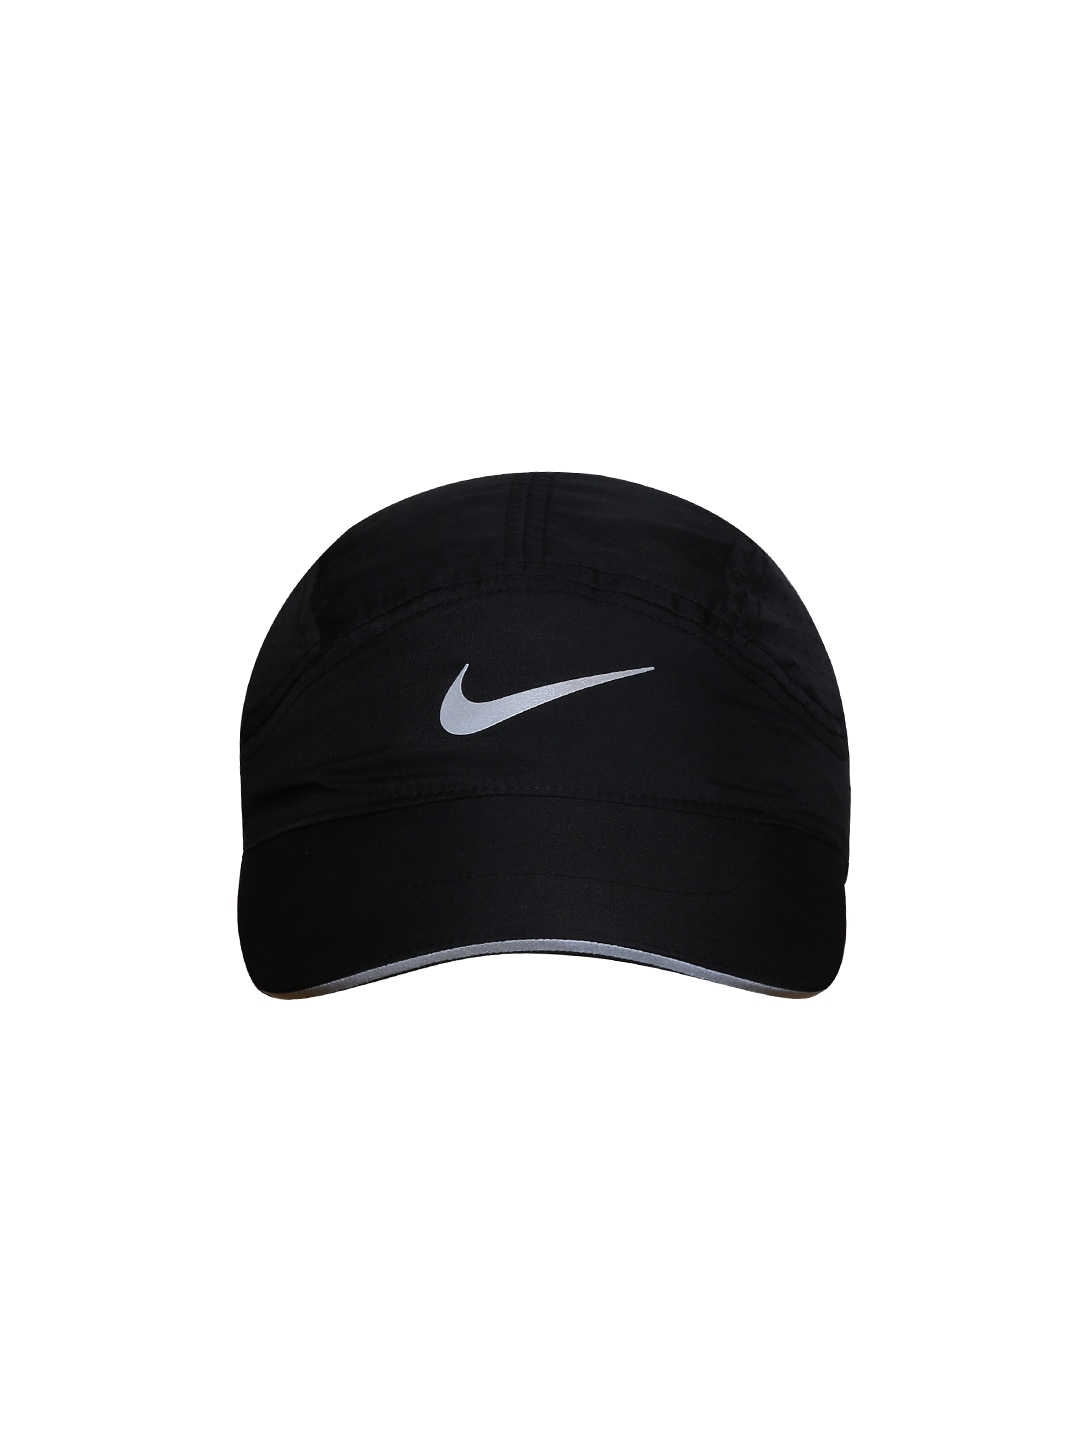 caf545f2c6055 Sports Caps - Buy Sports Caps Online in India